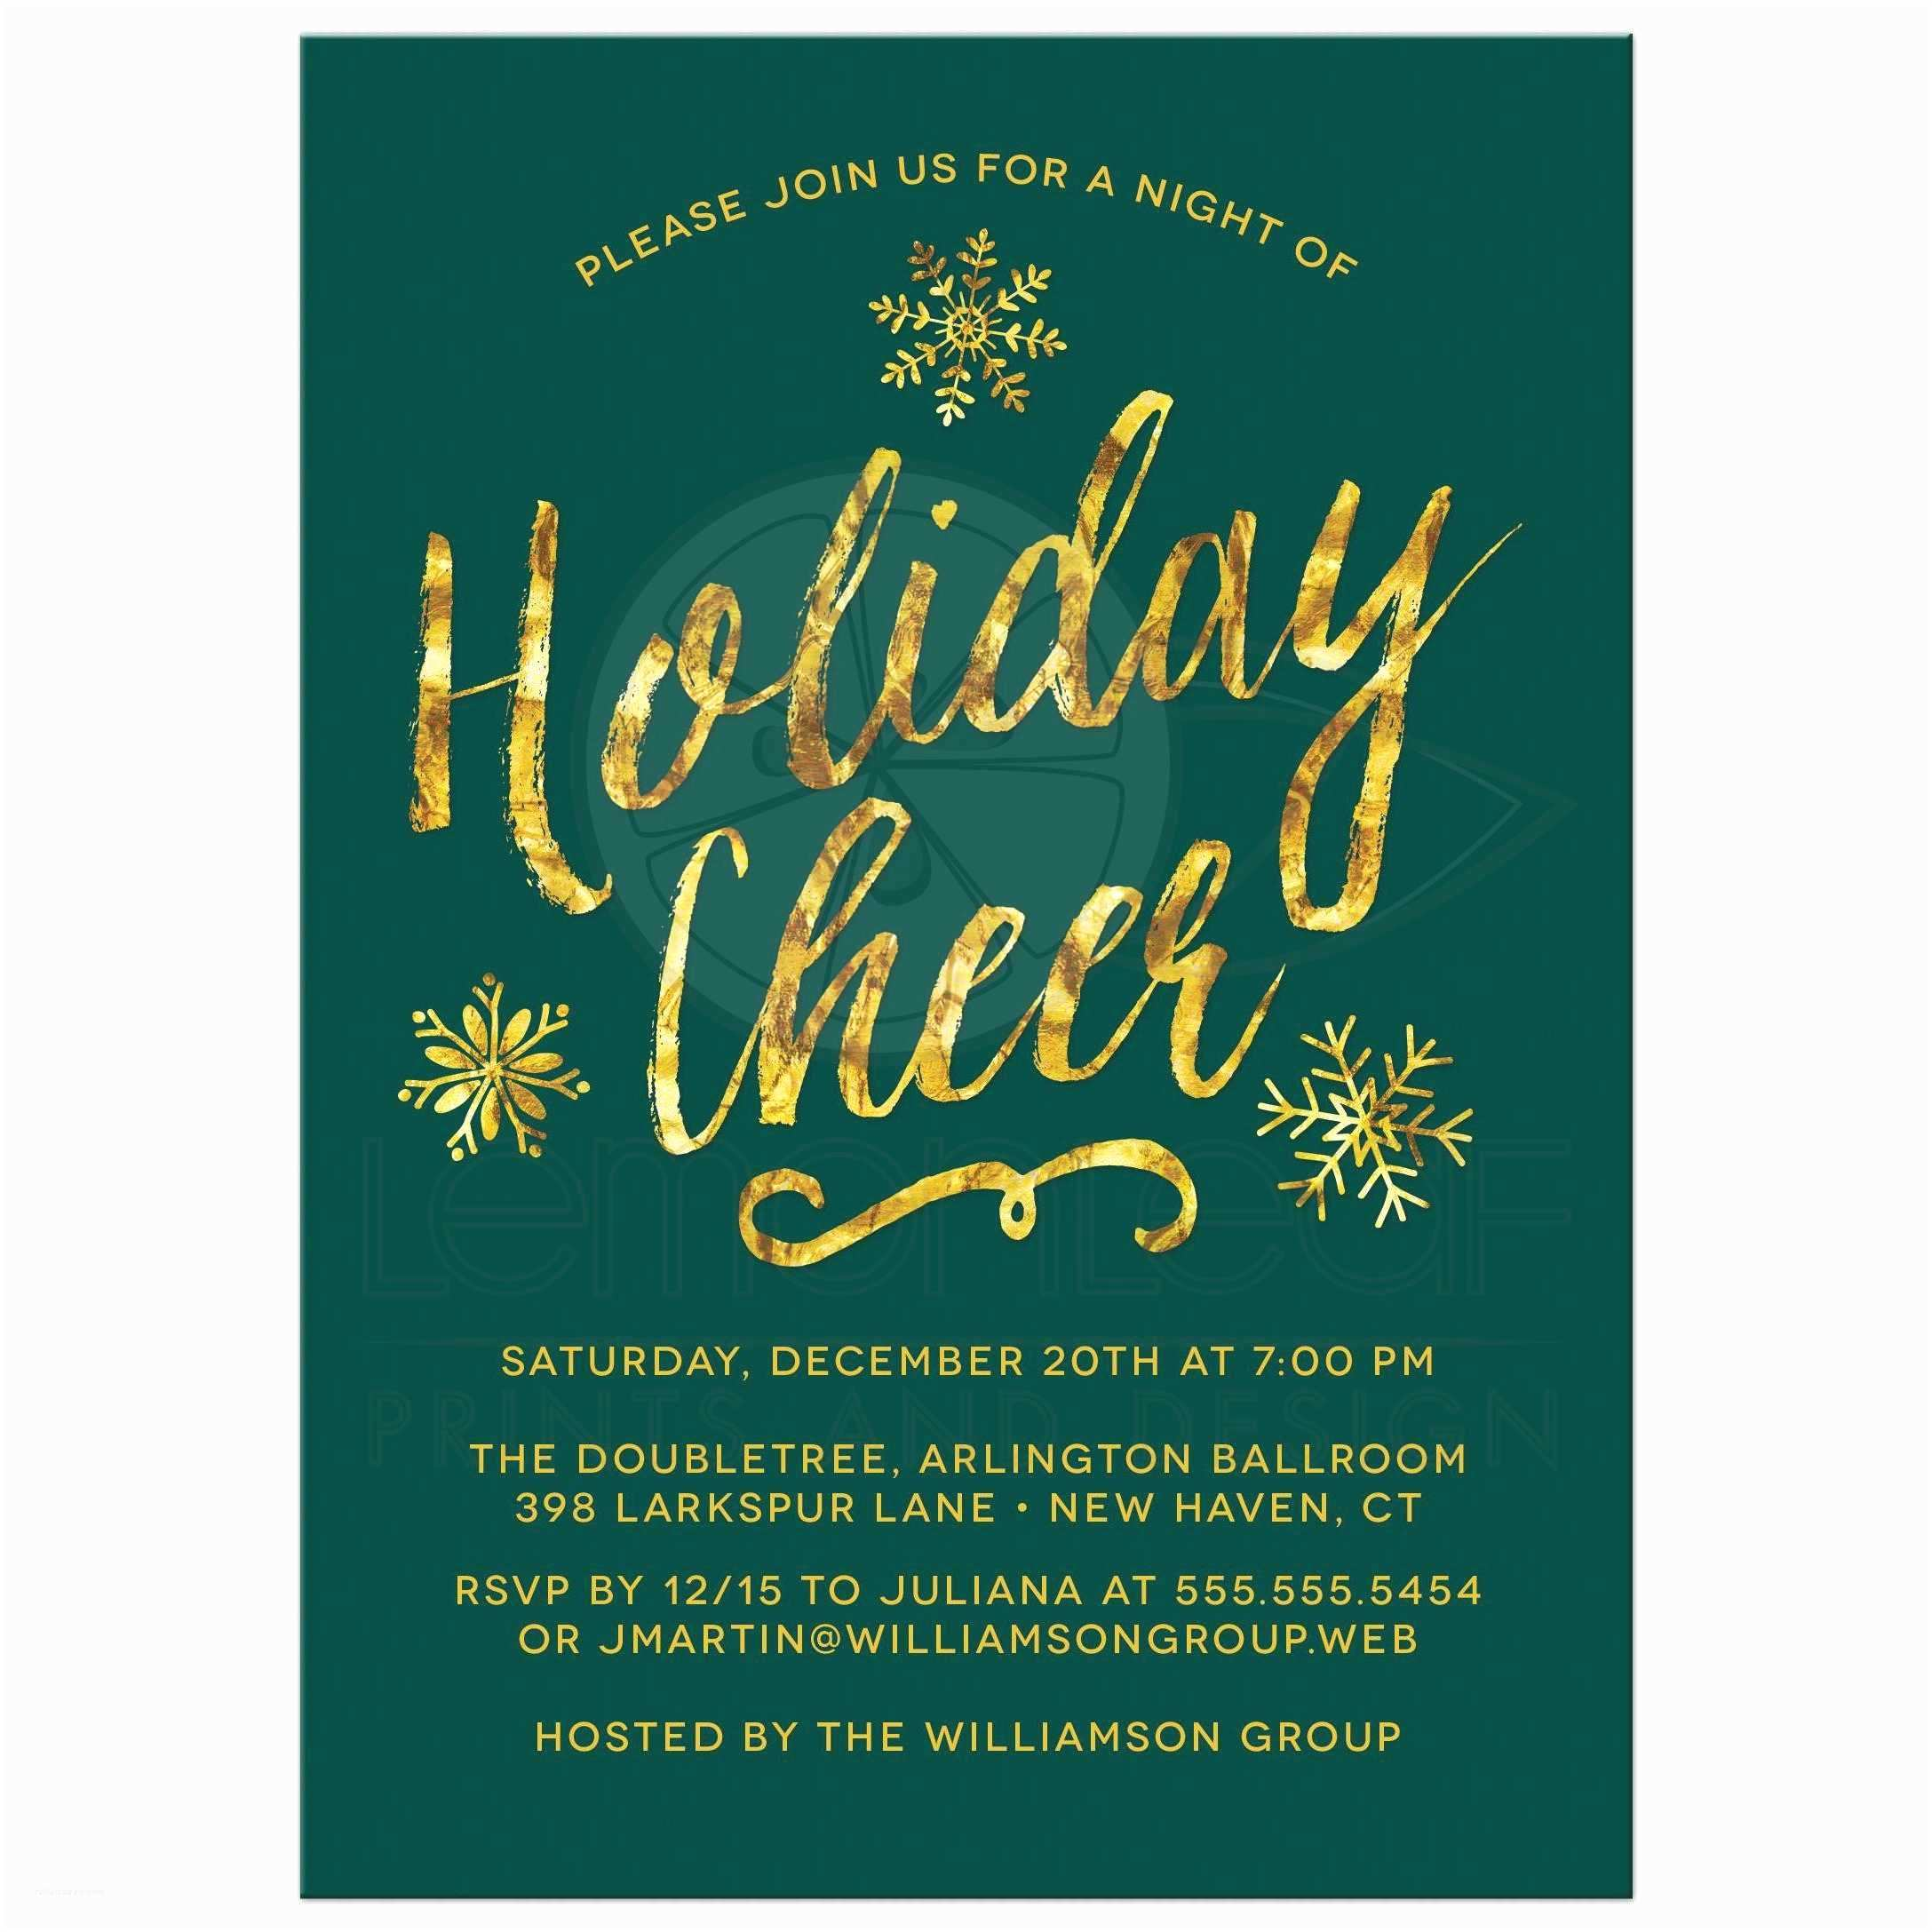 Company Holiday Party Invitation Corporate Holiday Party Invitations Golden Holiday Cheer